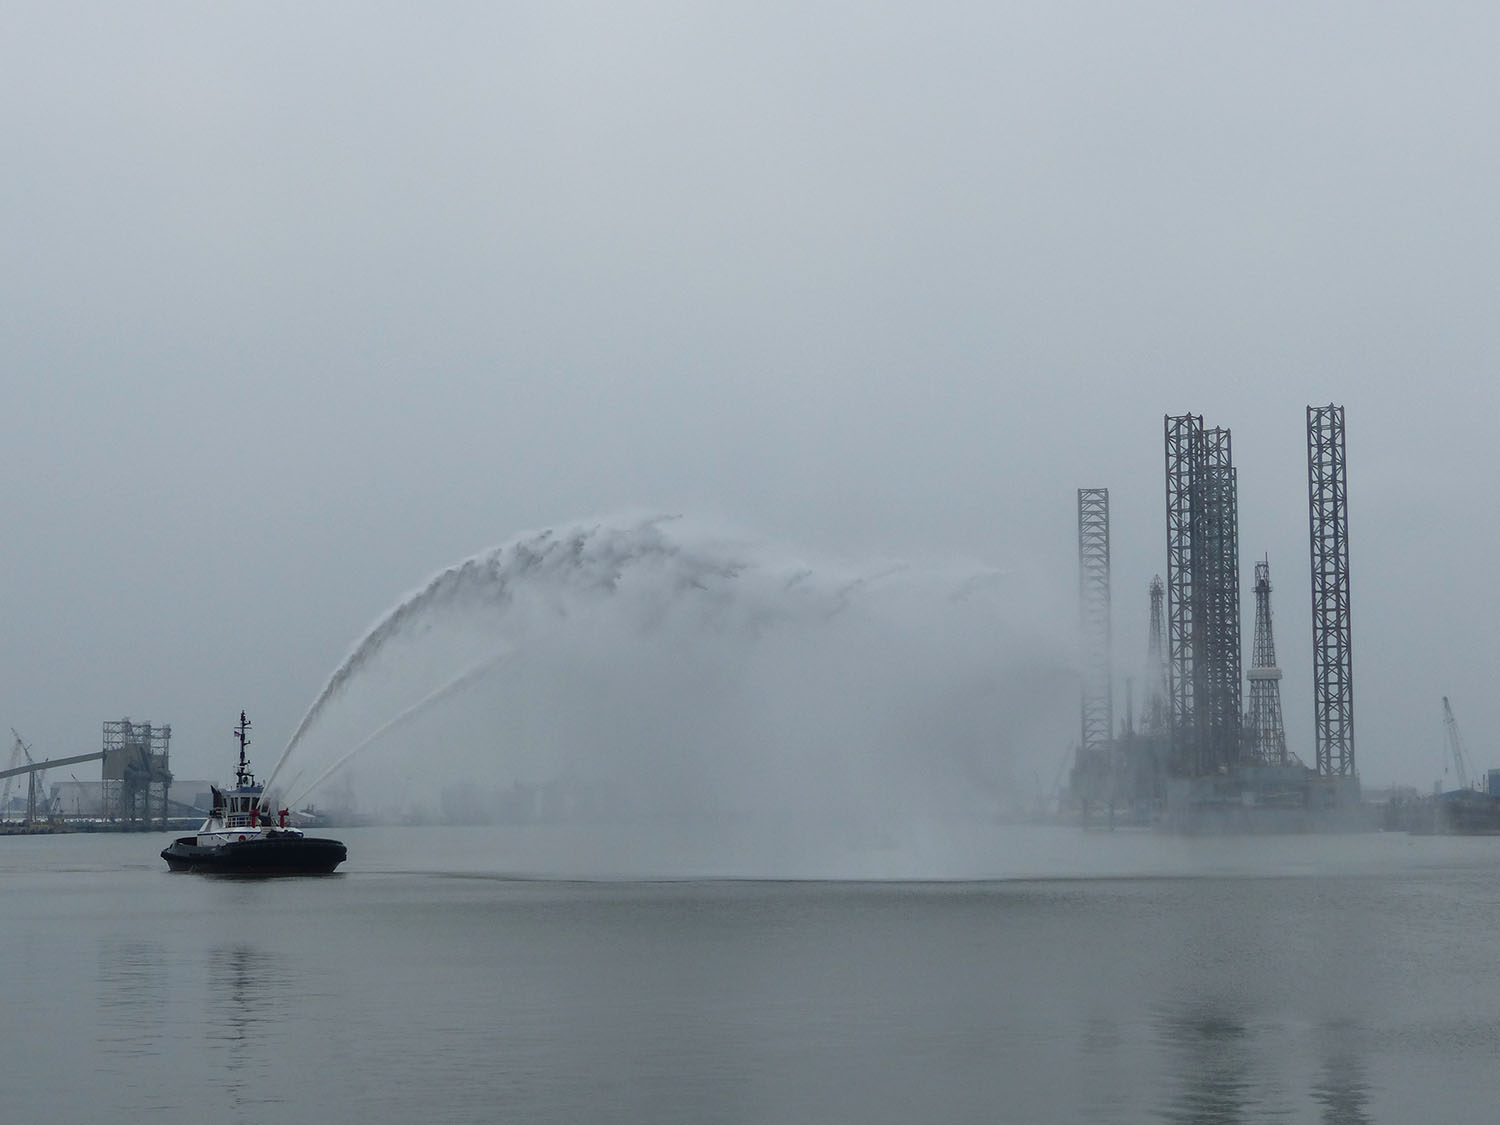 Fire boat doing its thing